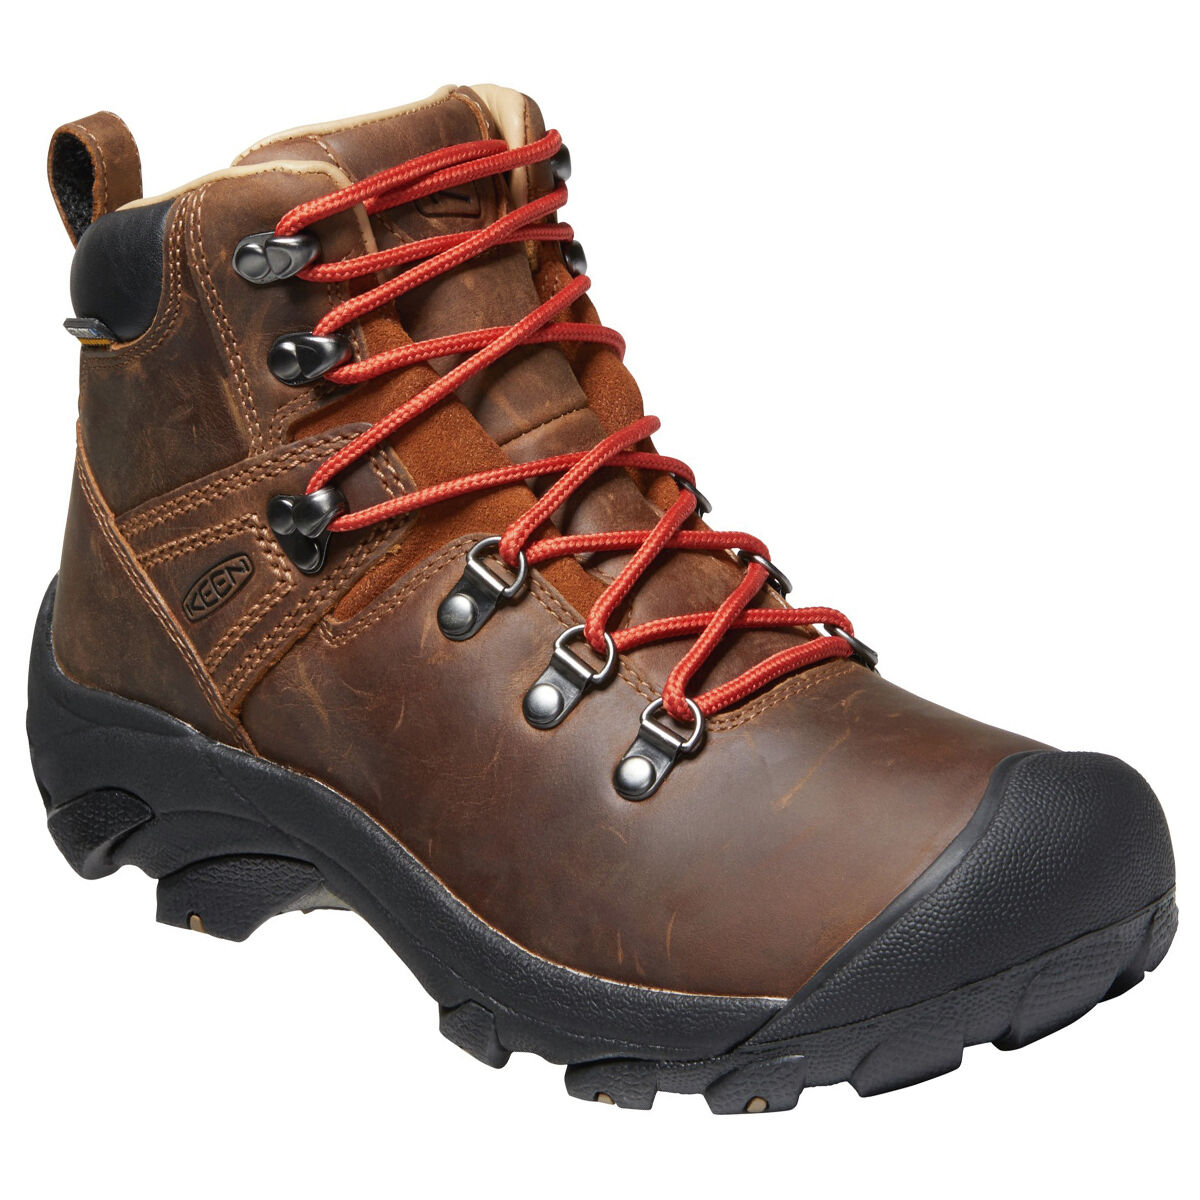 photo: Keen Women's Pyrenees hiking boot